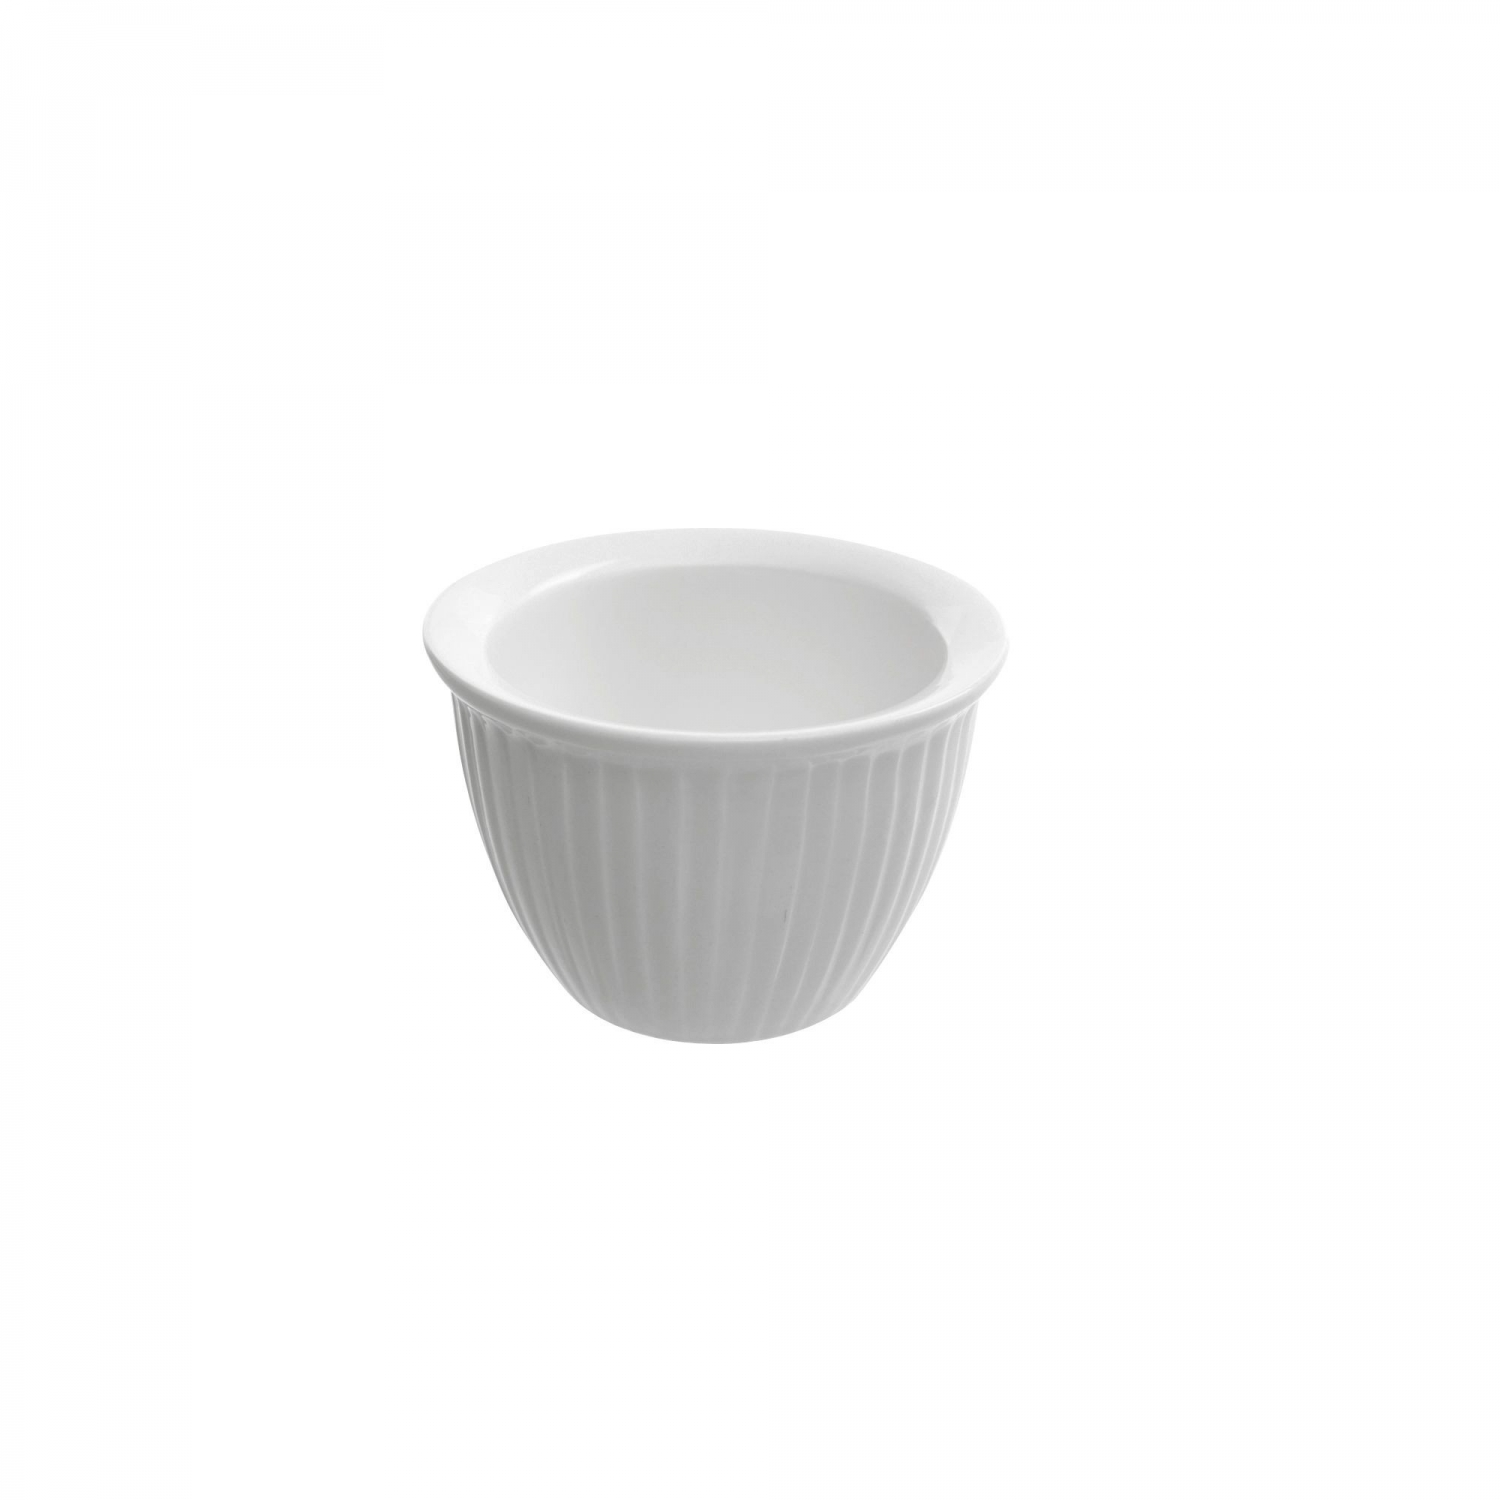 10 Strawberry Street WTR-4RDBKR Whittier Ramekin Cup 3-1/2""